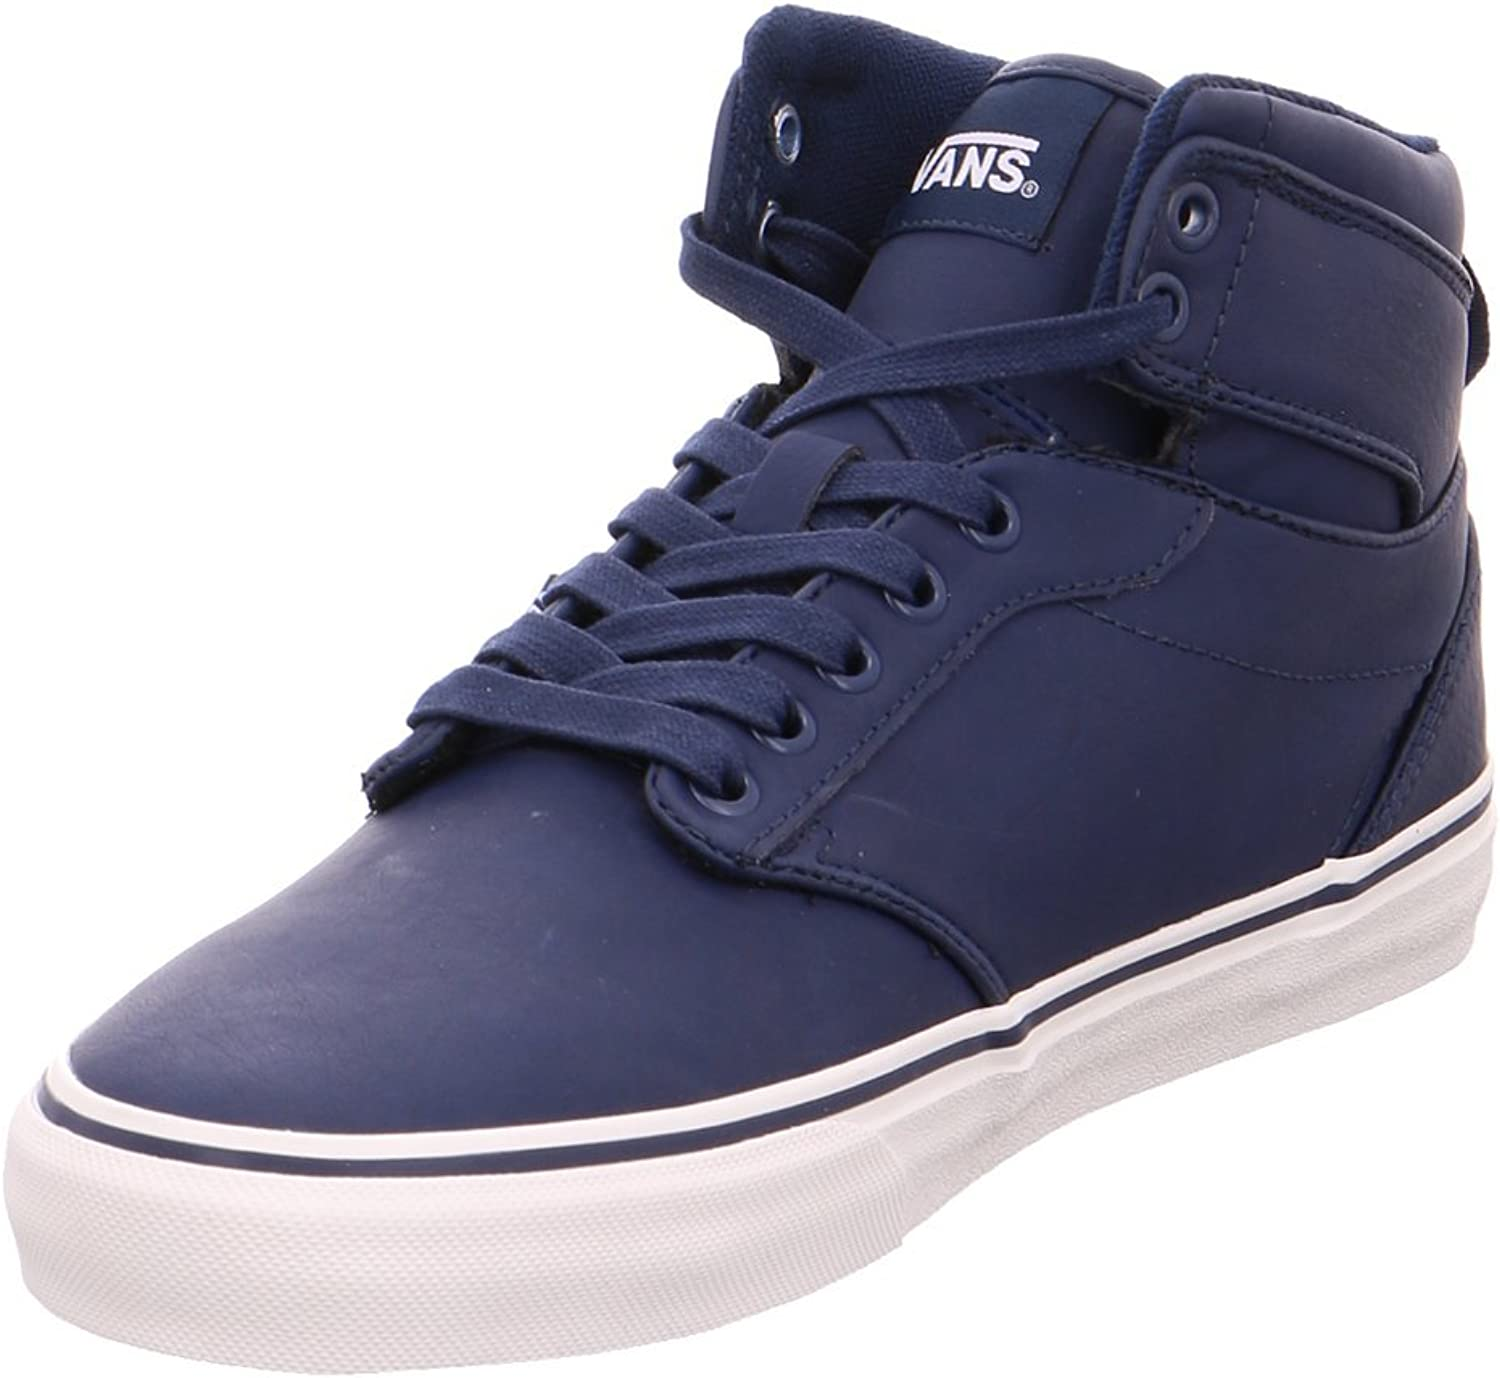 Vans Atwood Hi, Men's High-Top Trainers